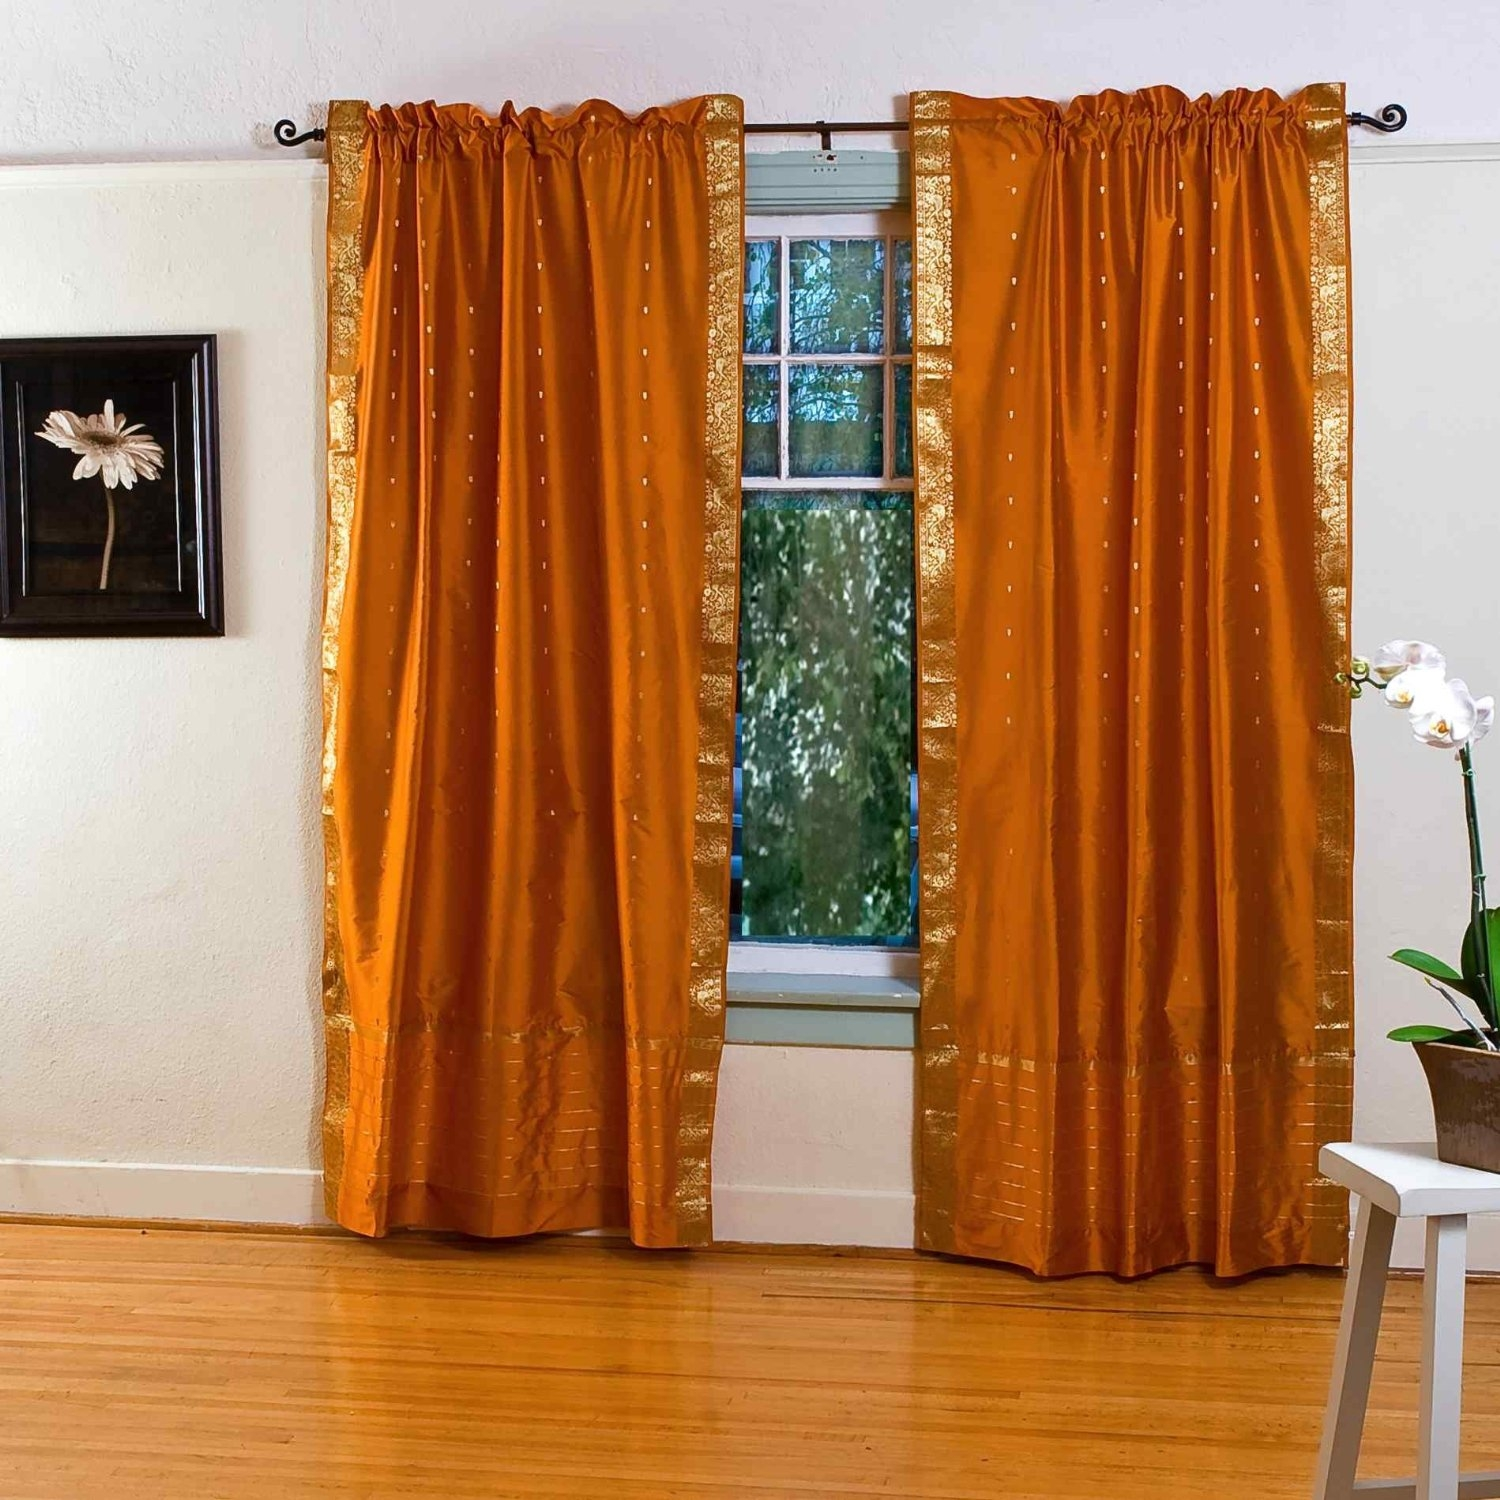 Heavenly Faux Silk Double Orange Curtains Hang On Bronze Curtain Regarding Orange Silk Curtains (Image 6 of 15)